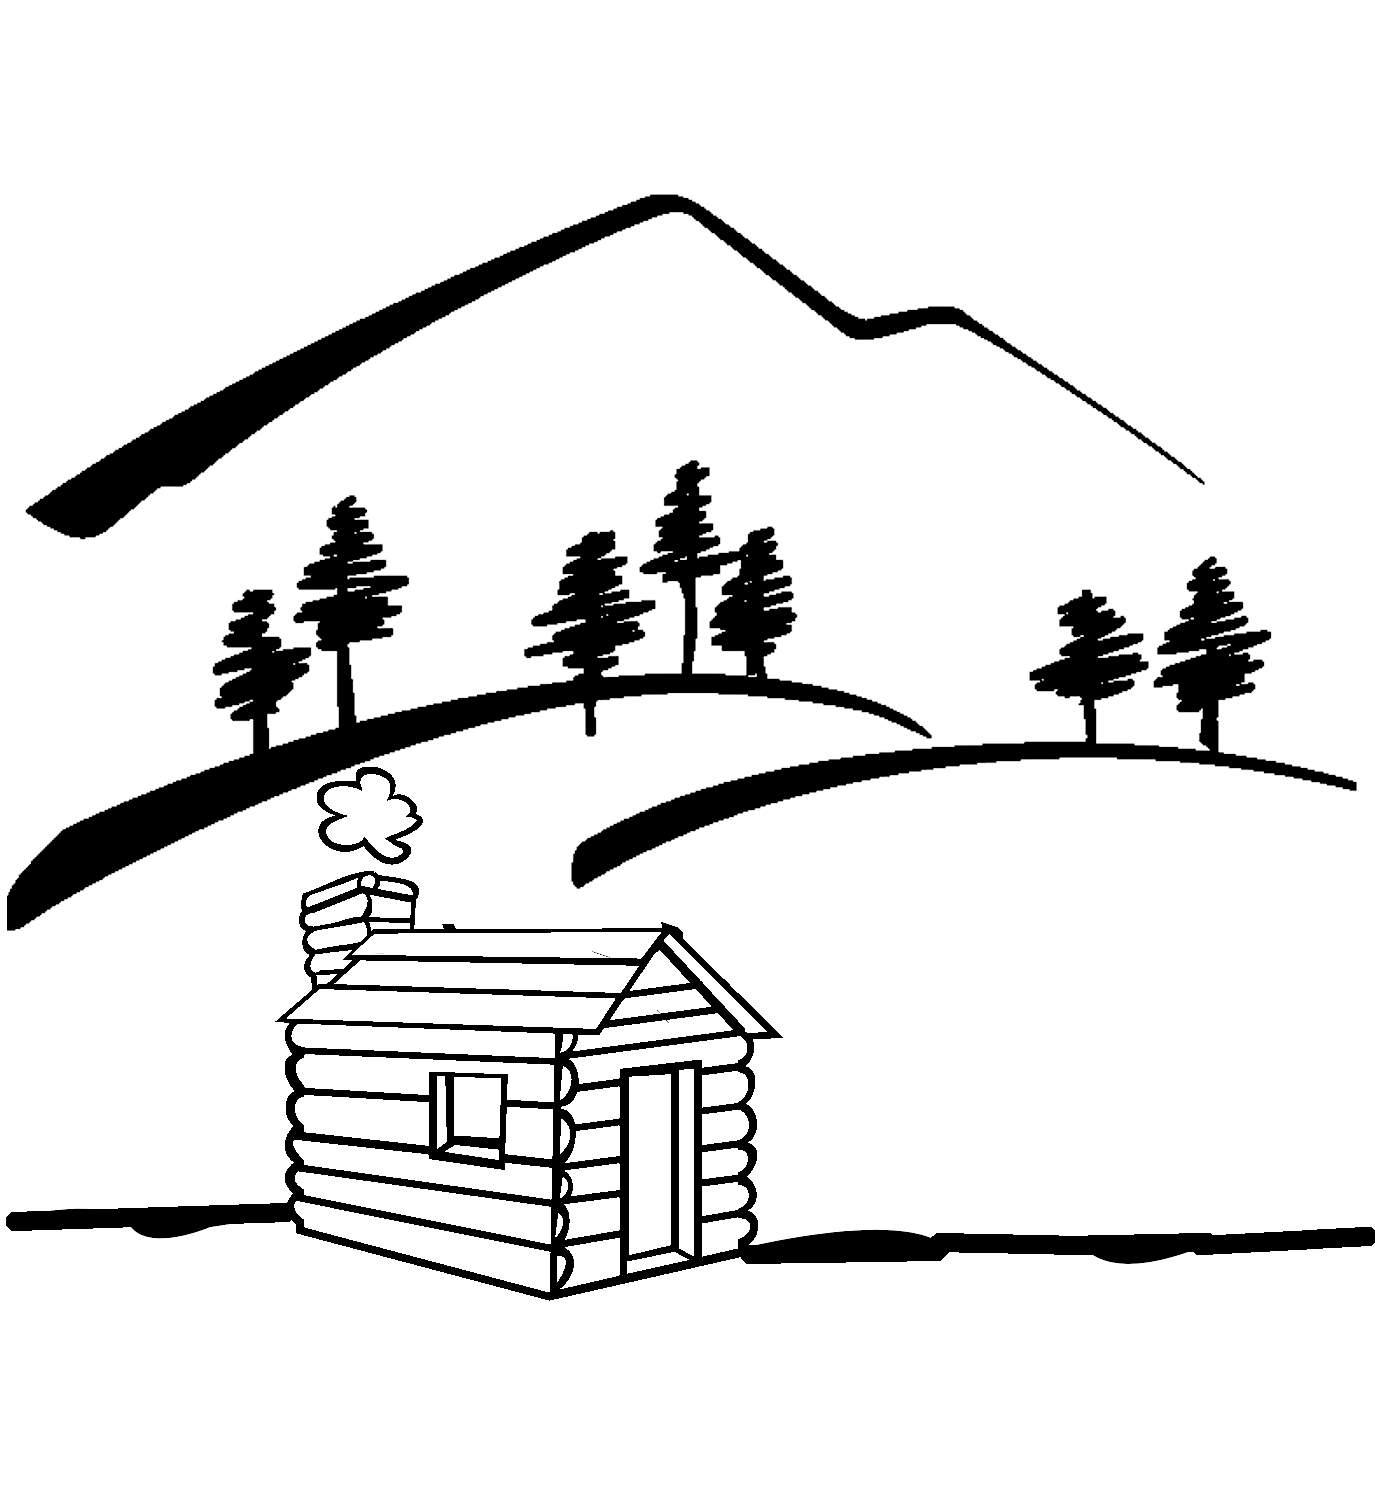 Cabin Clipart Black And White Cabin 20clip 20art 9trrxgnec Jpeg